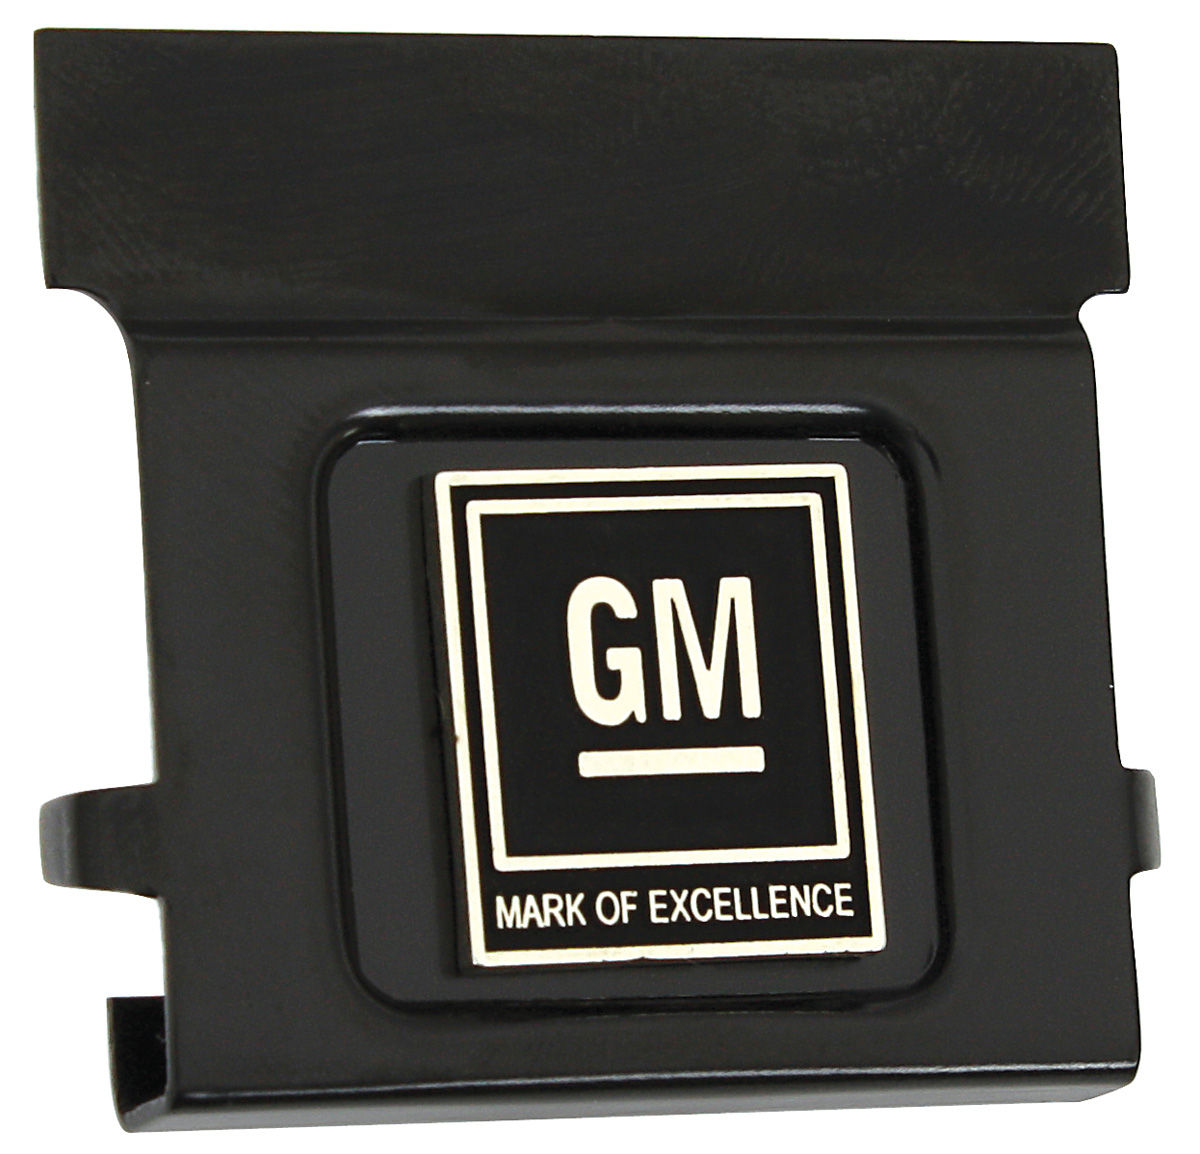 Photo of Seat Belt Push-Button (Grand Prix) all models, GM Mark of Excellence Emblem